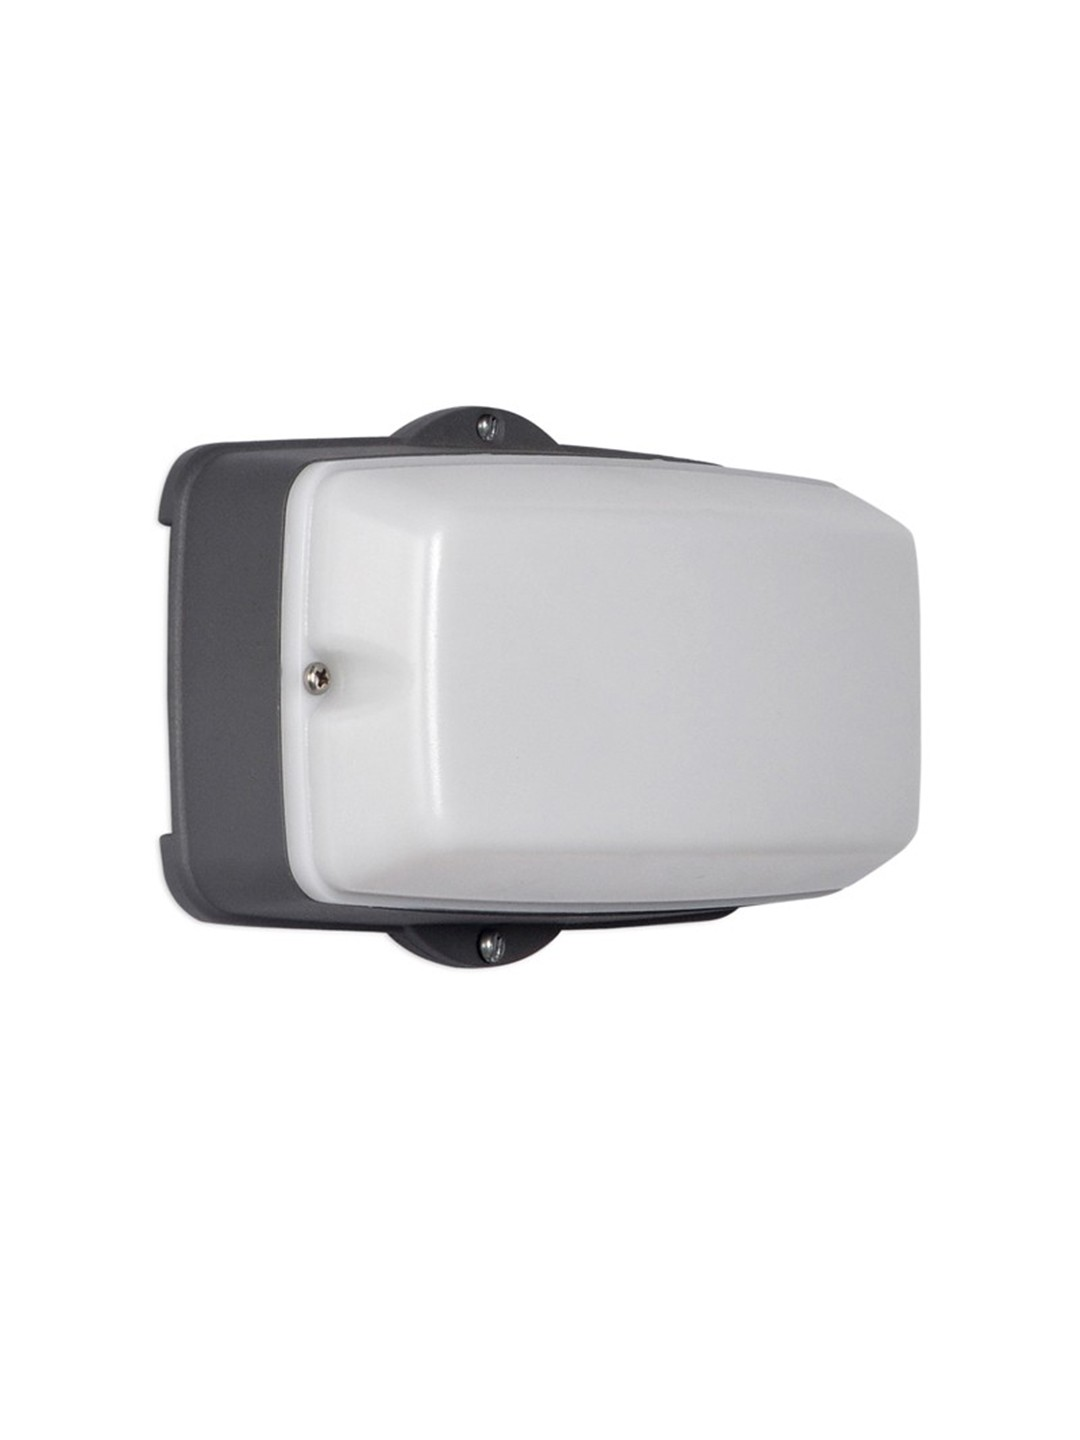 LED Bulkhead Outdoor Light in Coolday Light